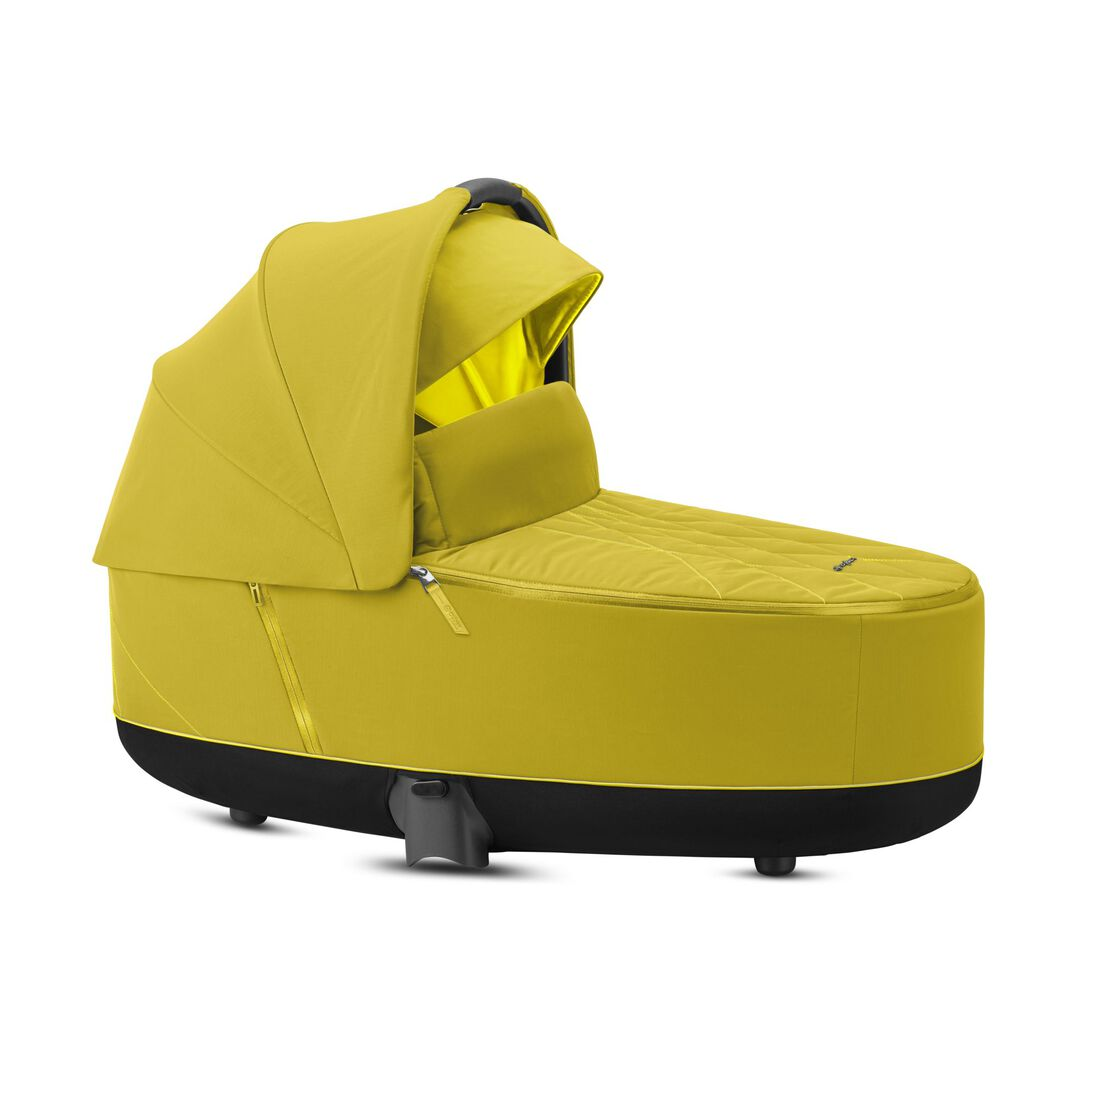 CYBEX Priam Lux Carry Cot - Mustard Yellow in Mustard Yellow large image number 2